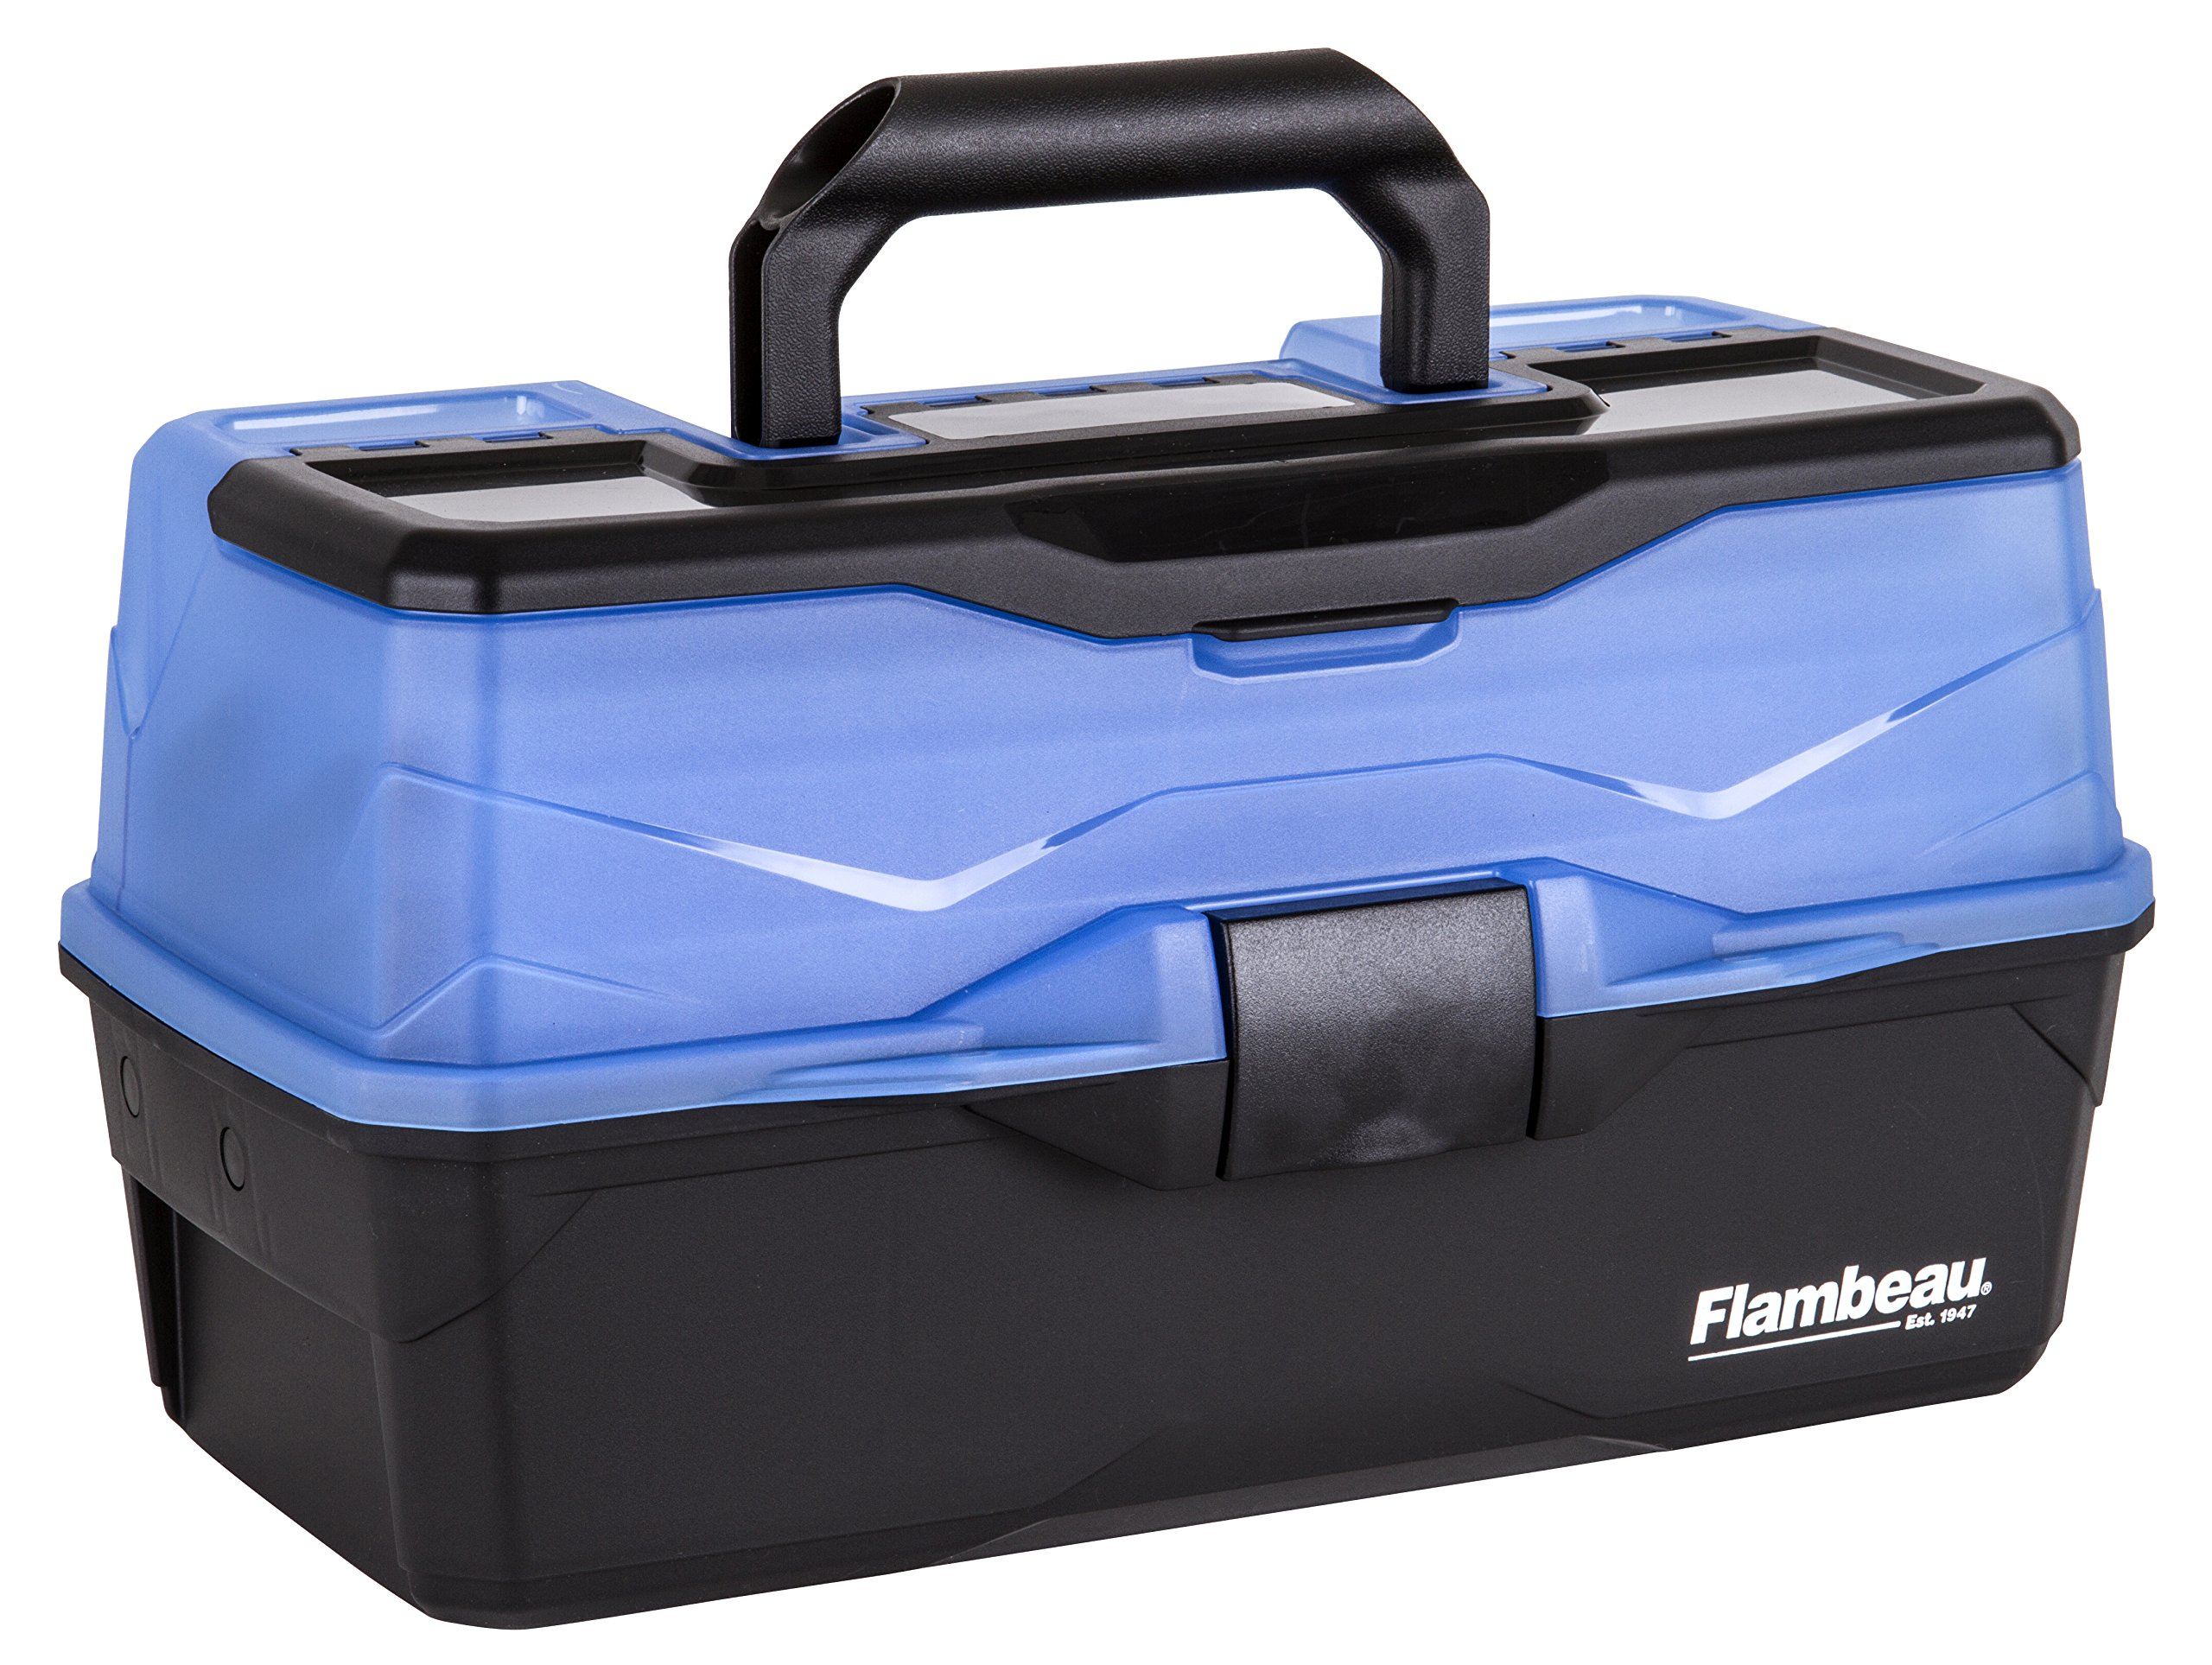 Flambeau Outdoors 6383 Classic 3-Tray Tackle Box, Frost Blue/Black